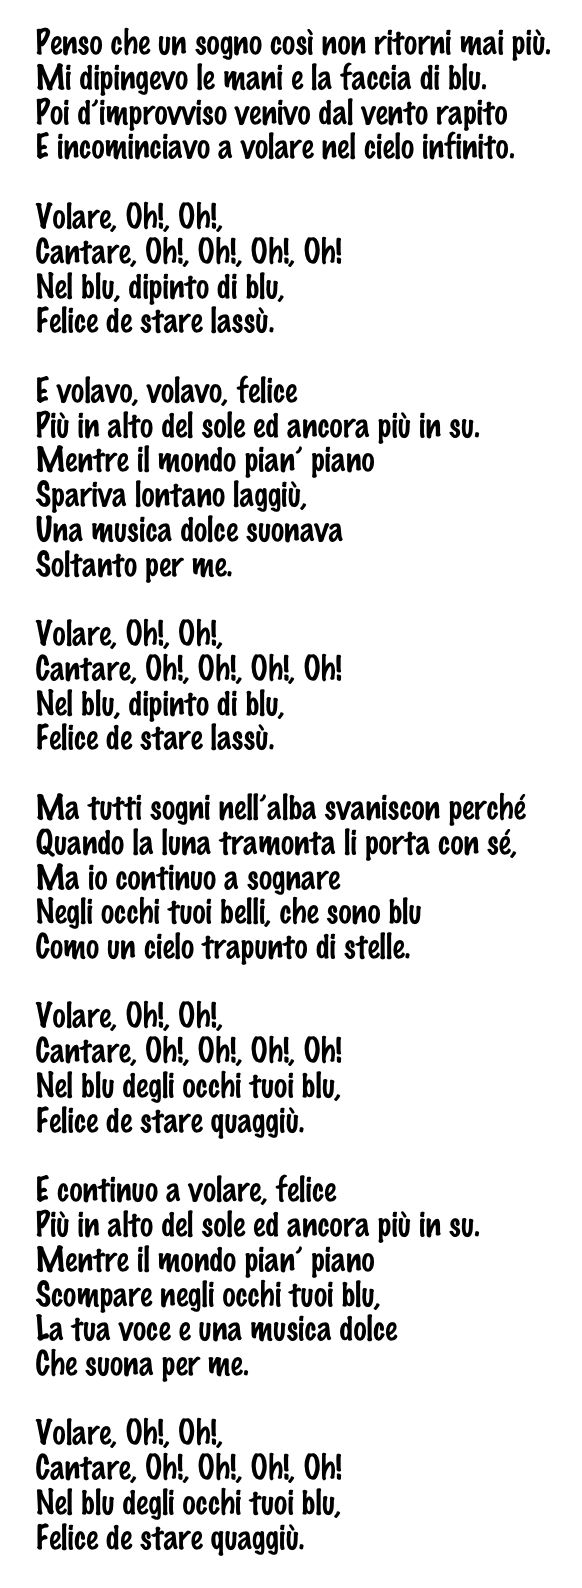 """""""Nel blu dipinto di blu"""" (In the Blue, Painted Blue), popularly known as """"Volare"""", is a song recorded by Italian singer-songwriter Domenico Modugno. Written by Franco Migliacci and Domenico Modugno, it was released as a single on 1 February 1958."""